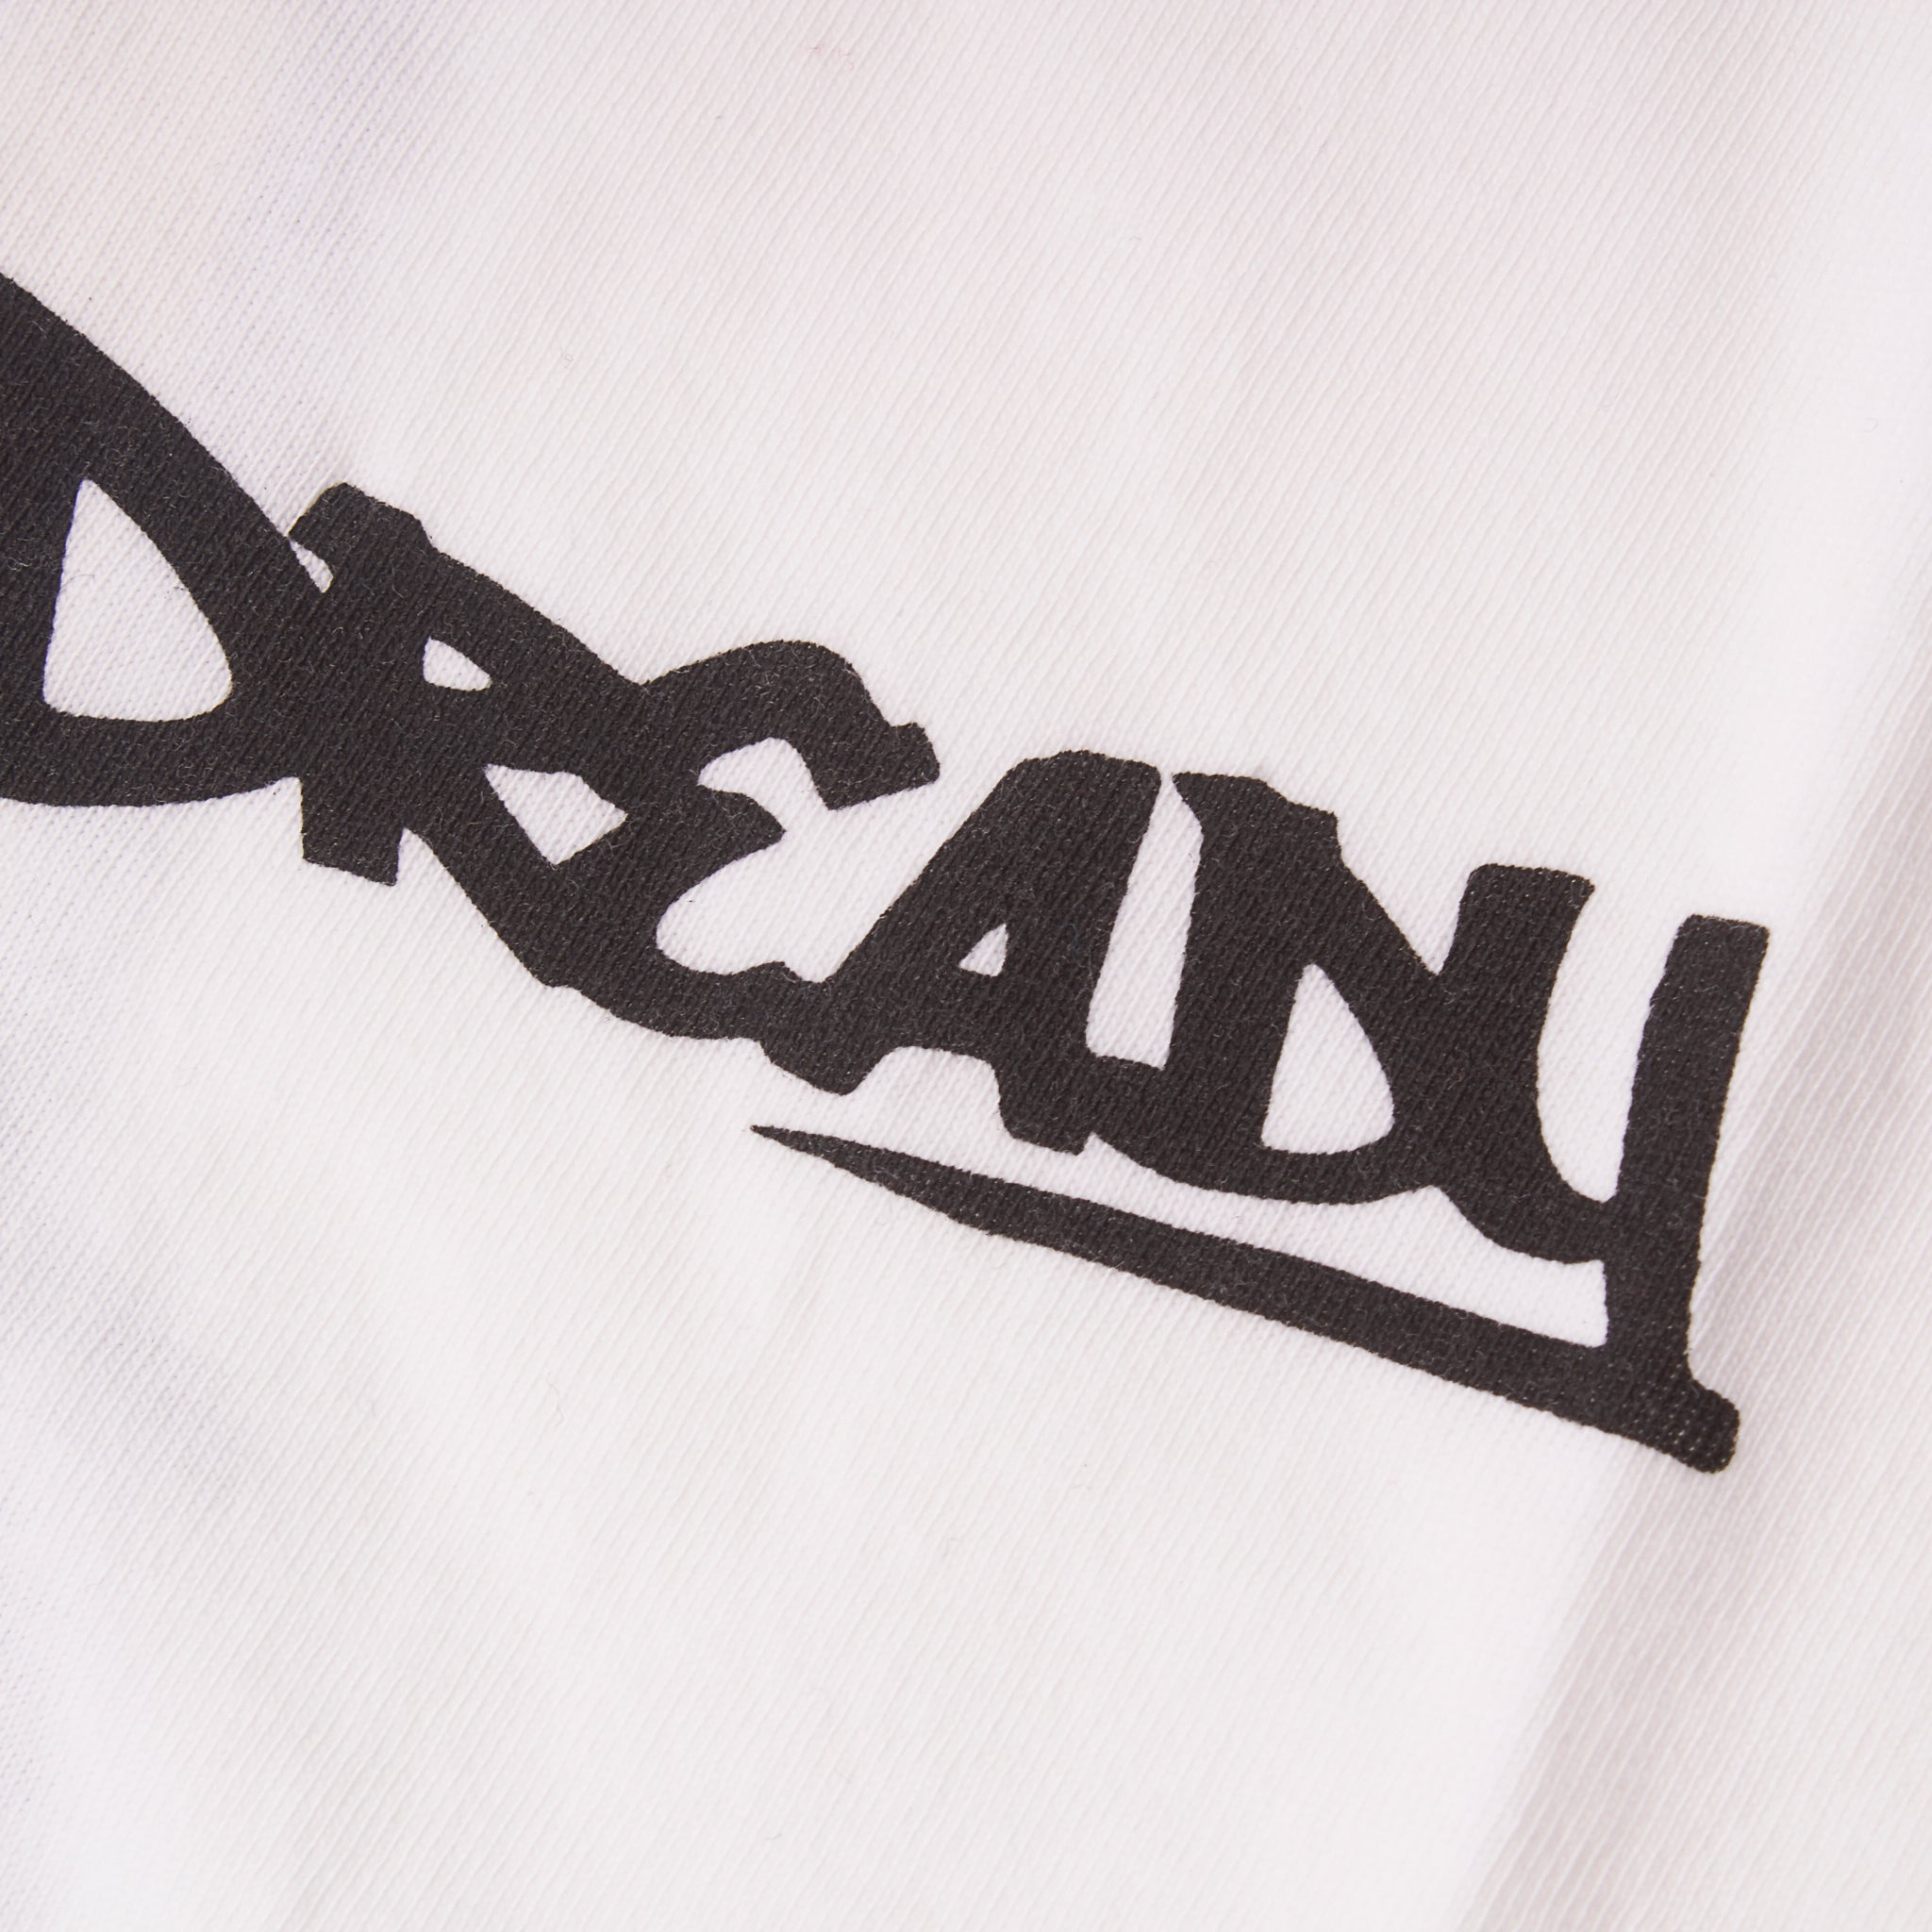 Dready Tee Footprint White